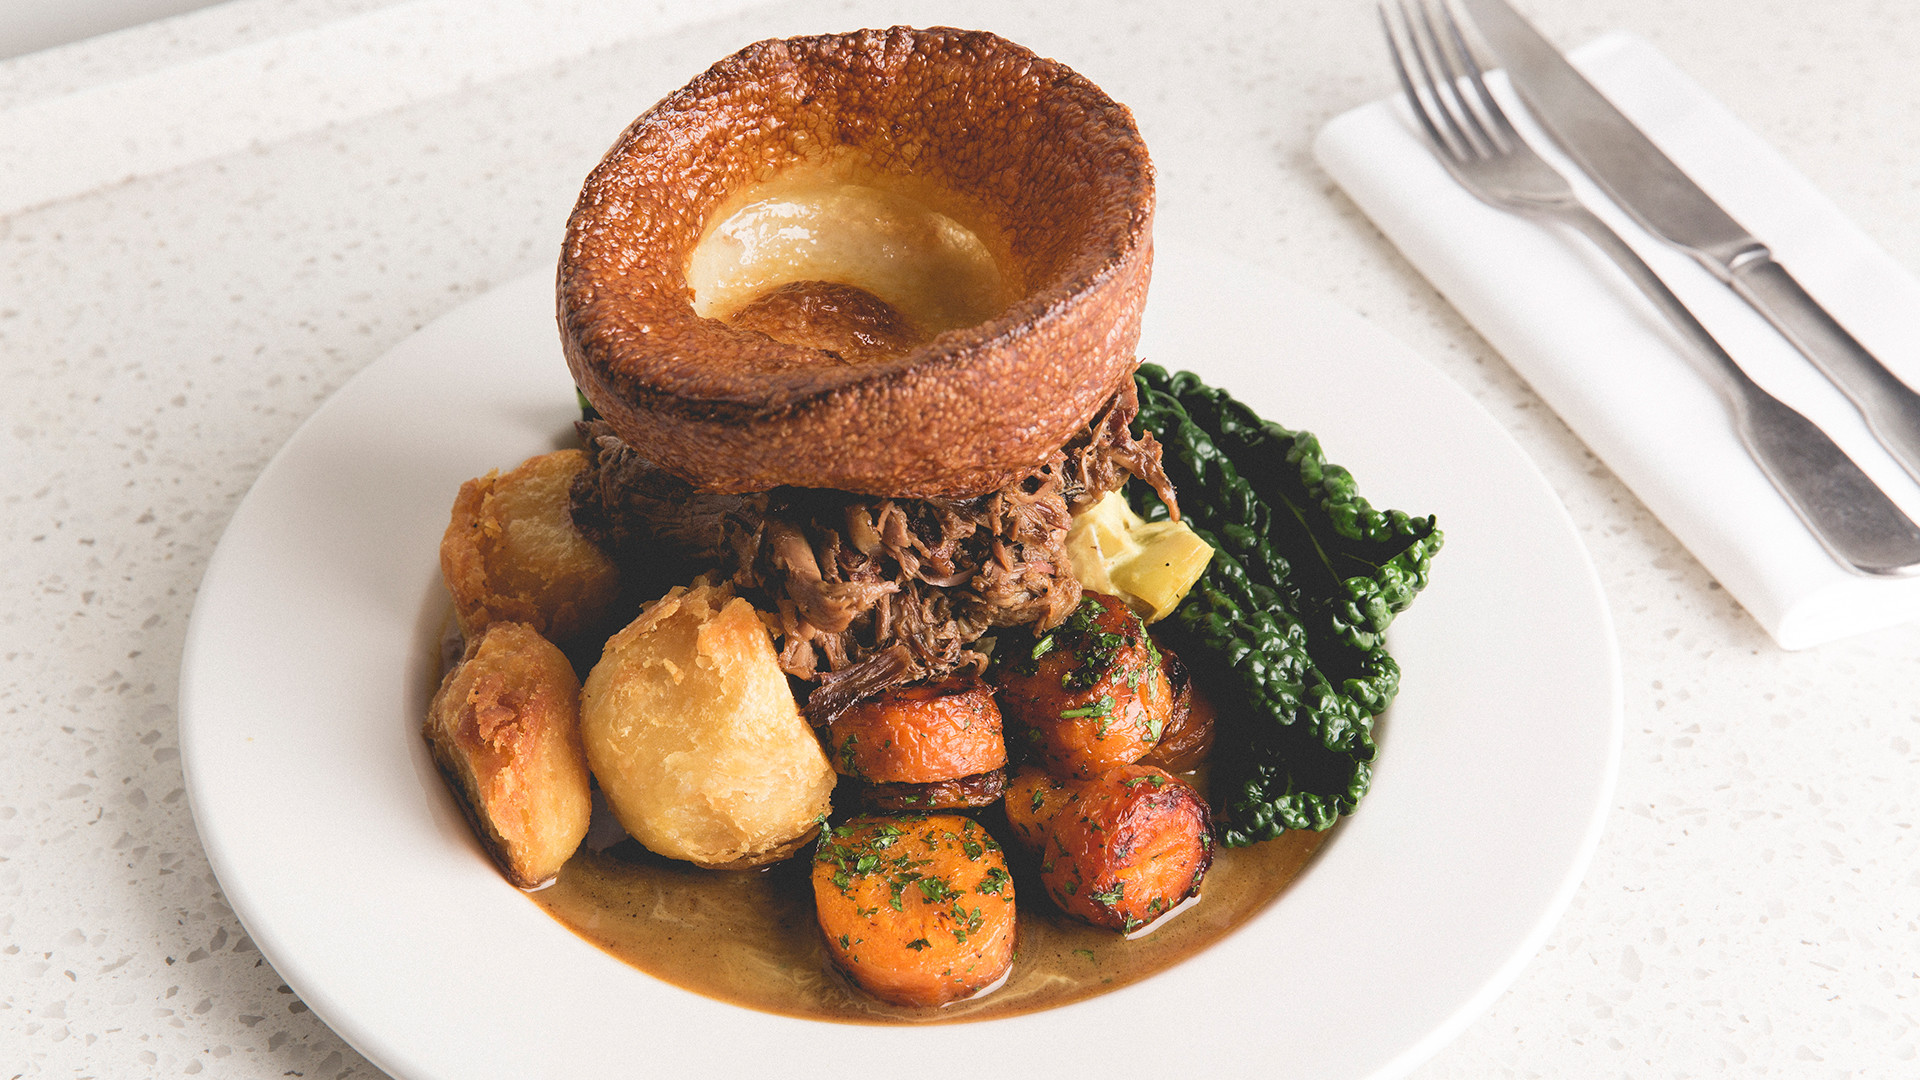 London's best Sunday roast – Coal Rooms